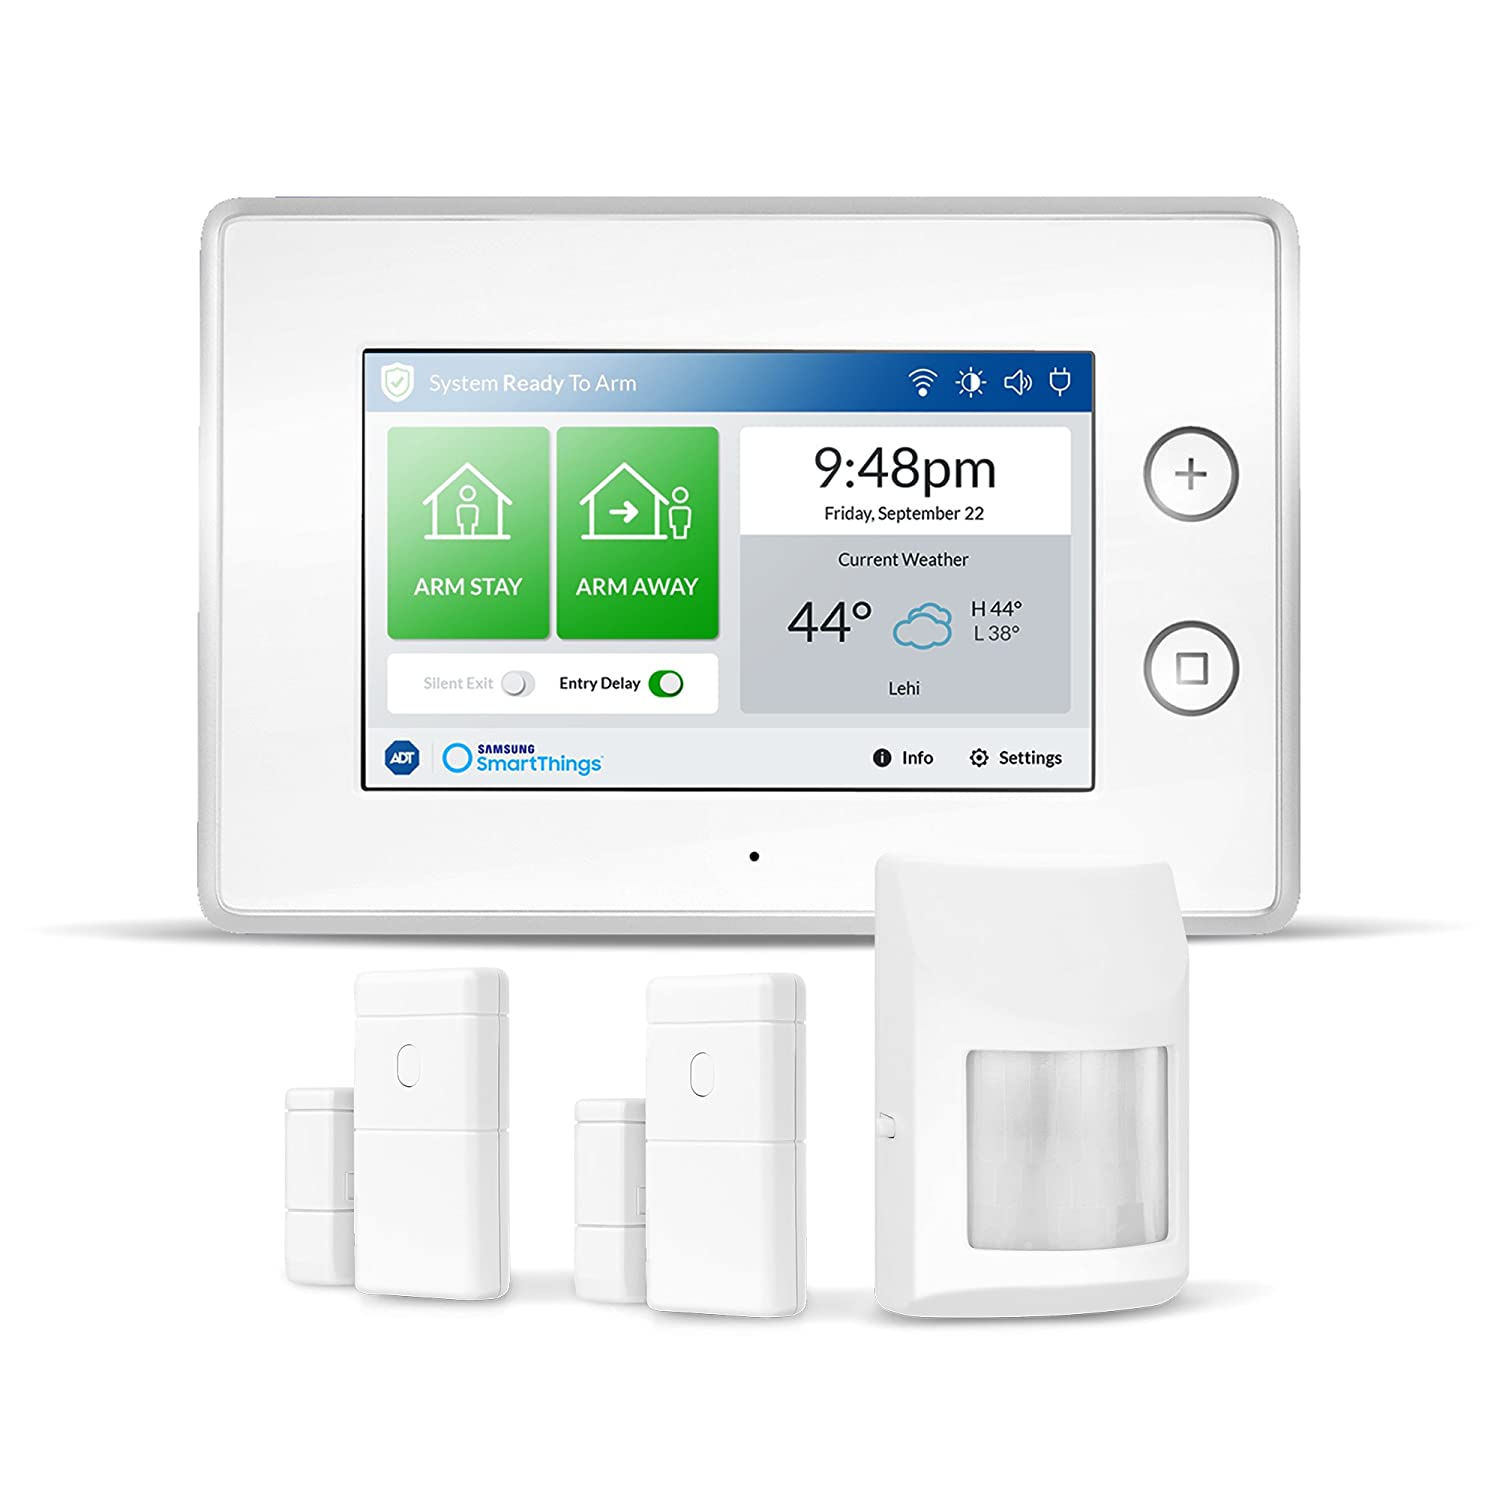 Samsung ADT Wireless Home Secu...